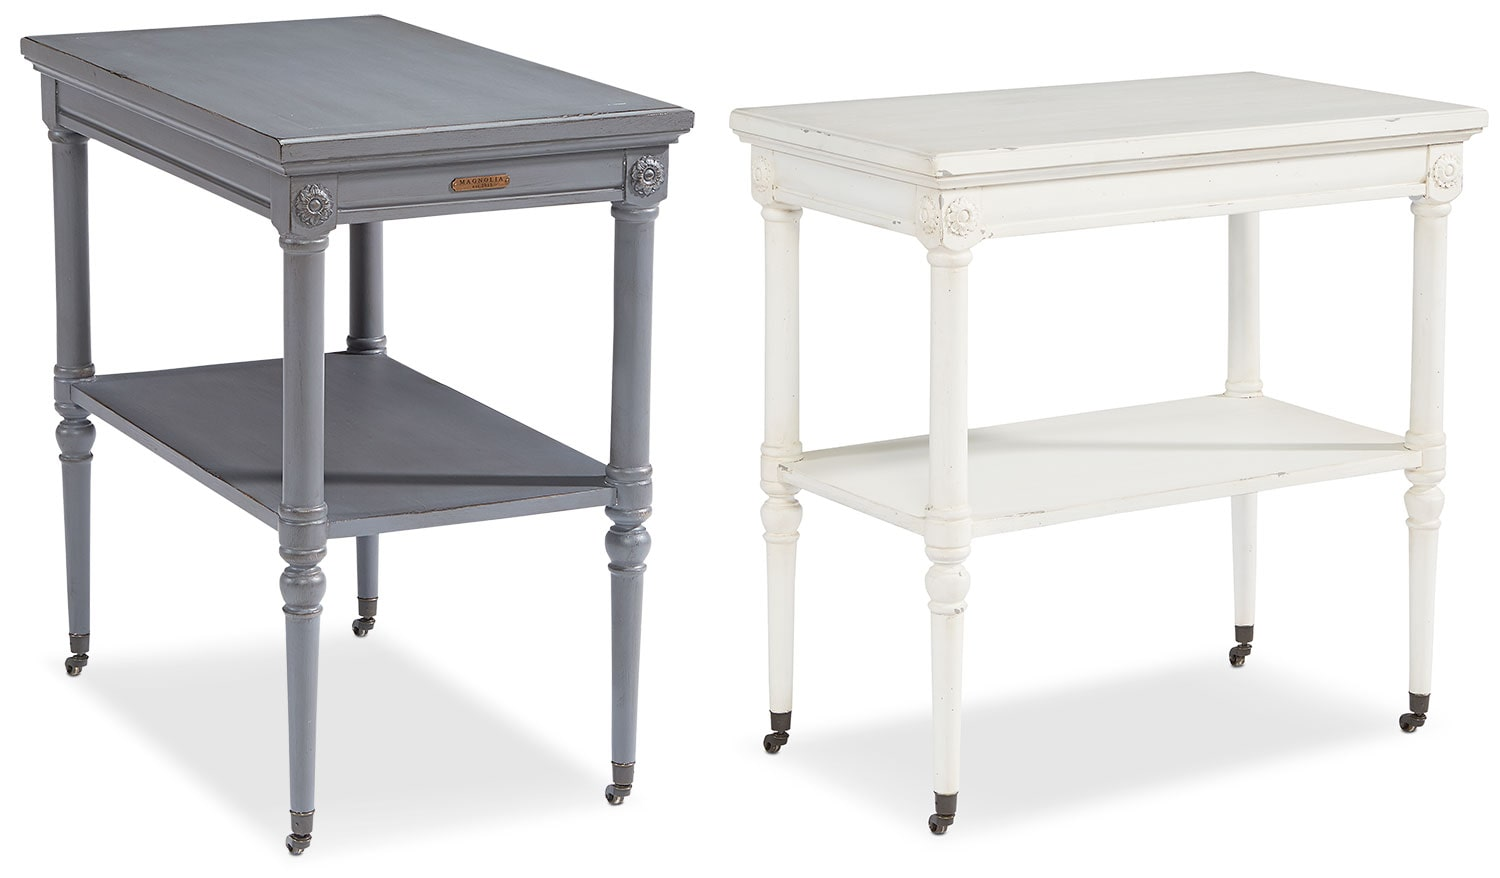 The French-Inspired Petite Rosette Table Collection